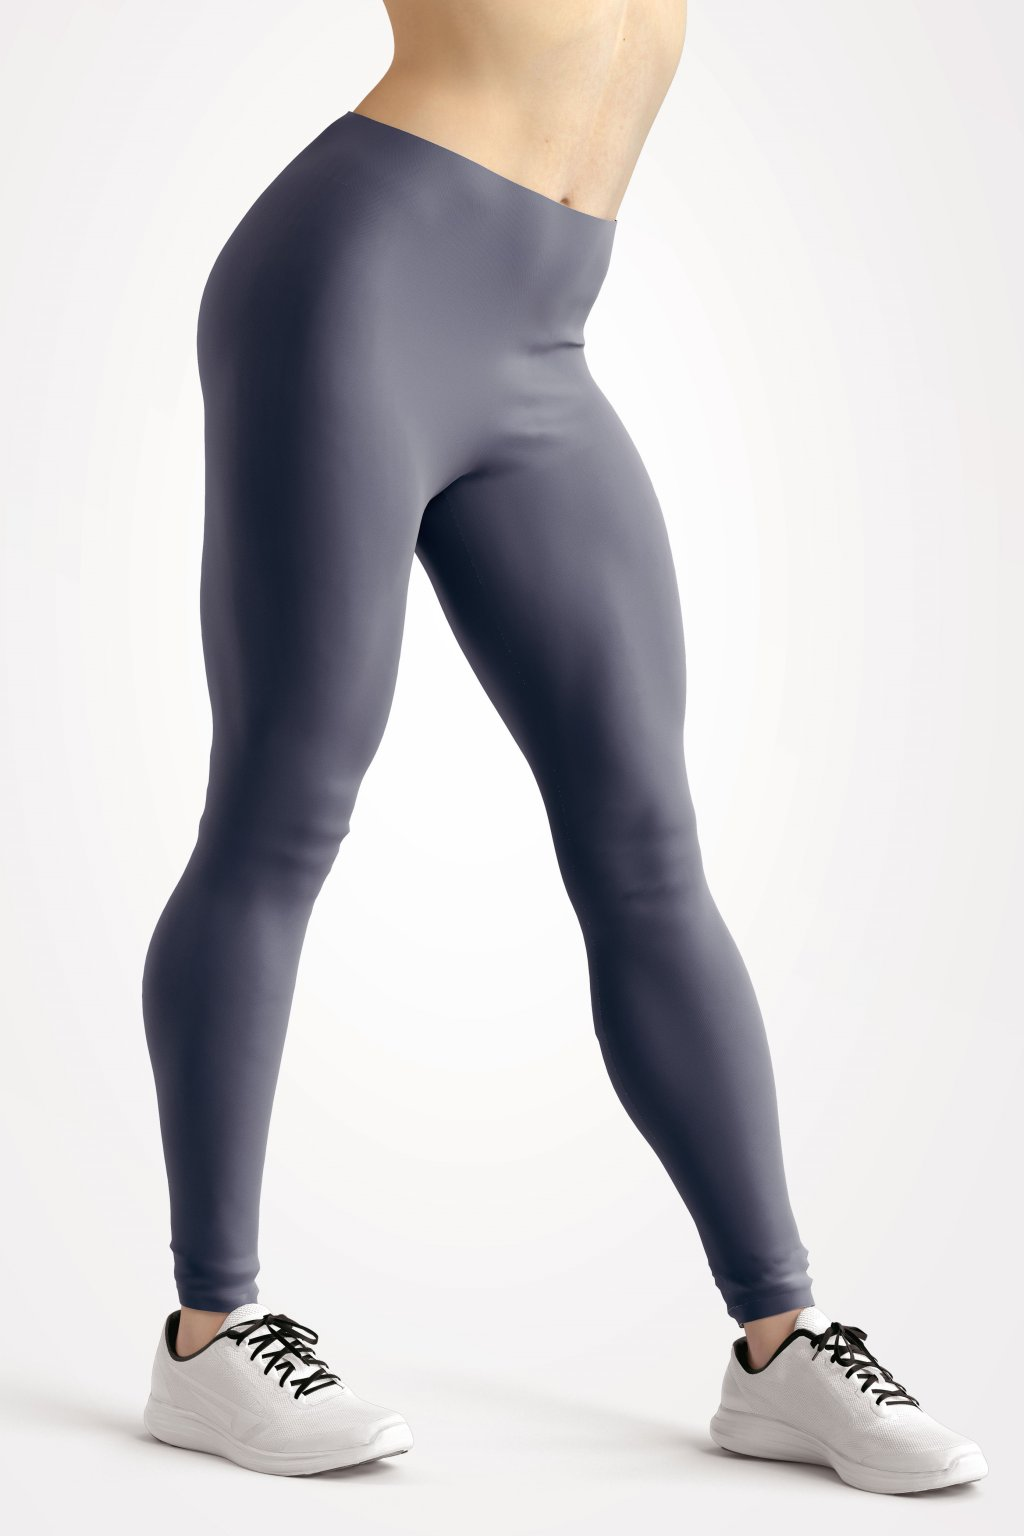 leggings state grey essentials front side by utopy